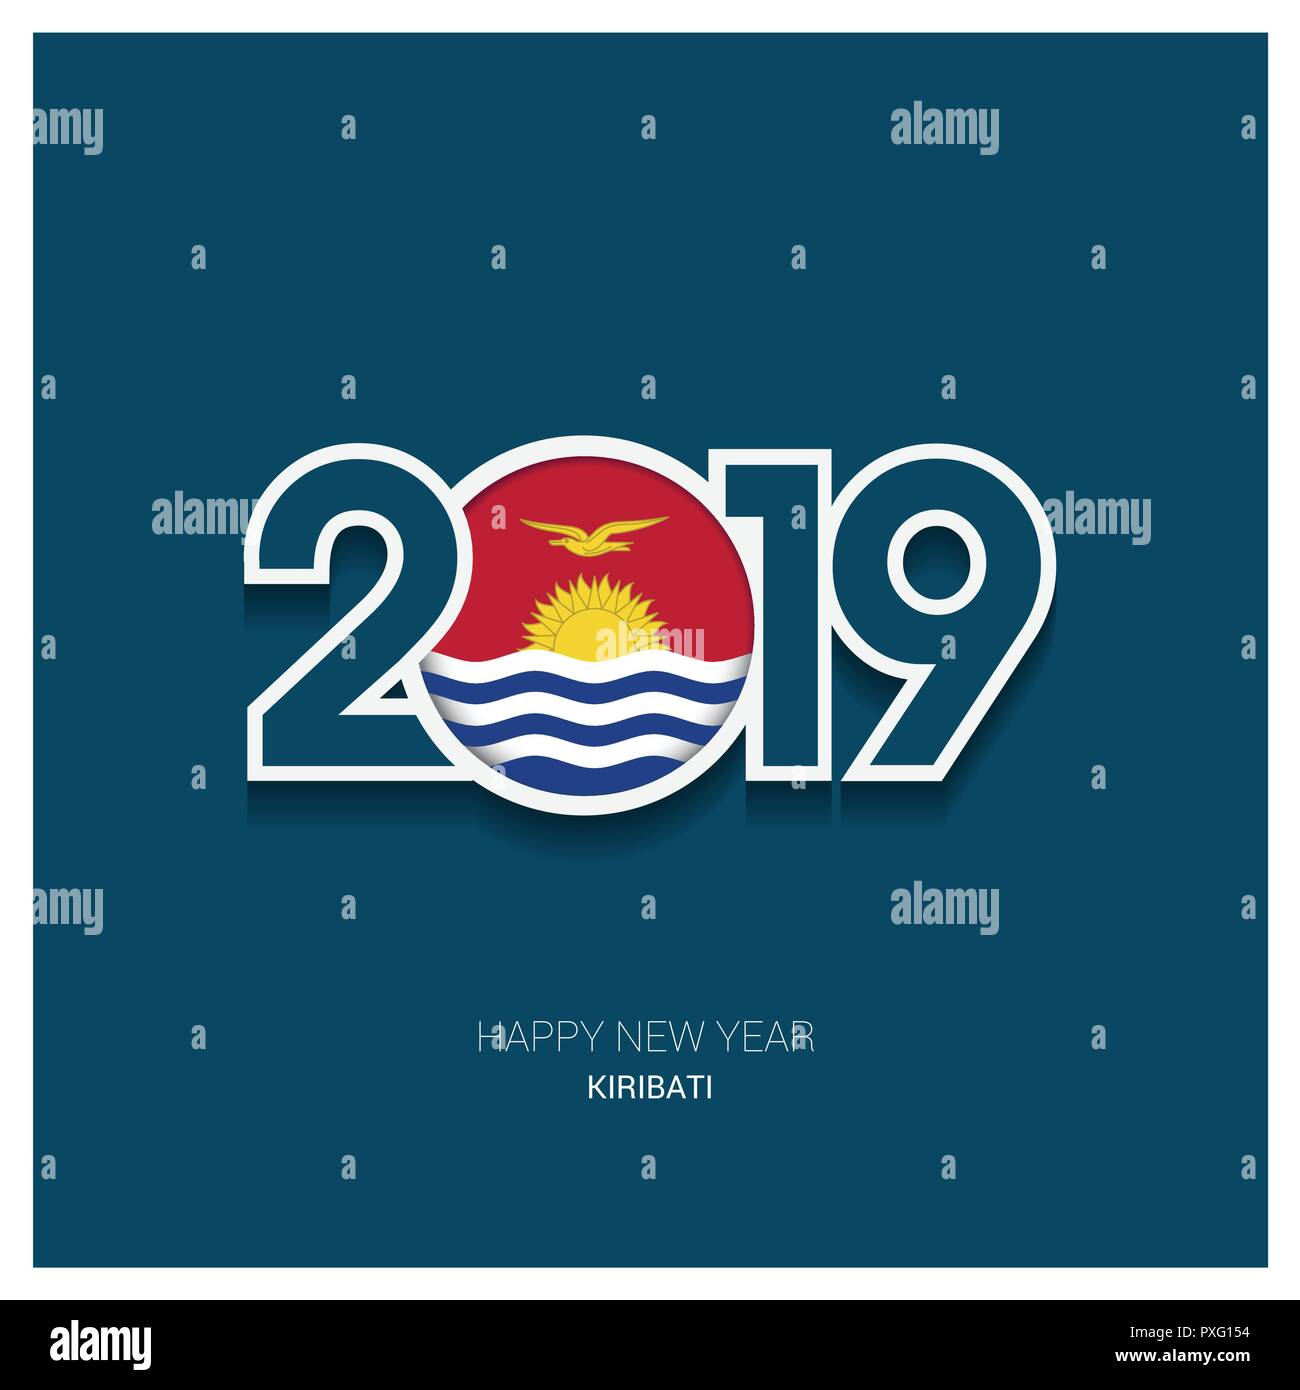 2019 Kiribati Typography, Happy New Year Background - Stock Image